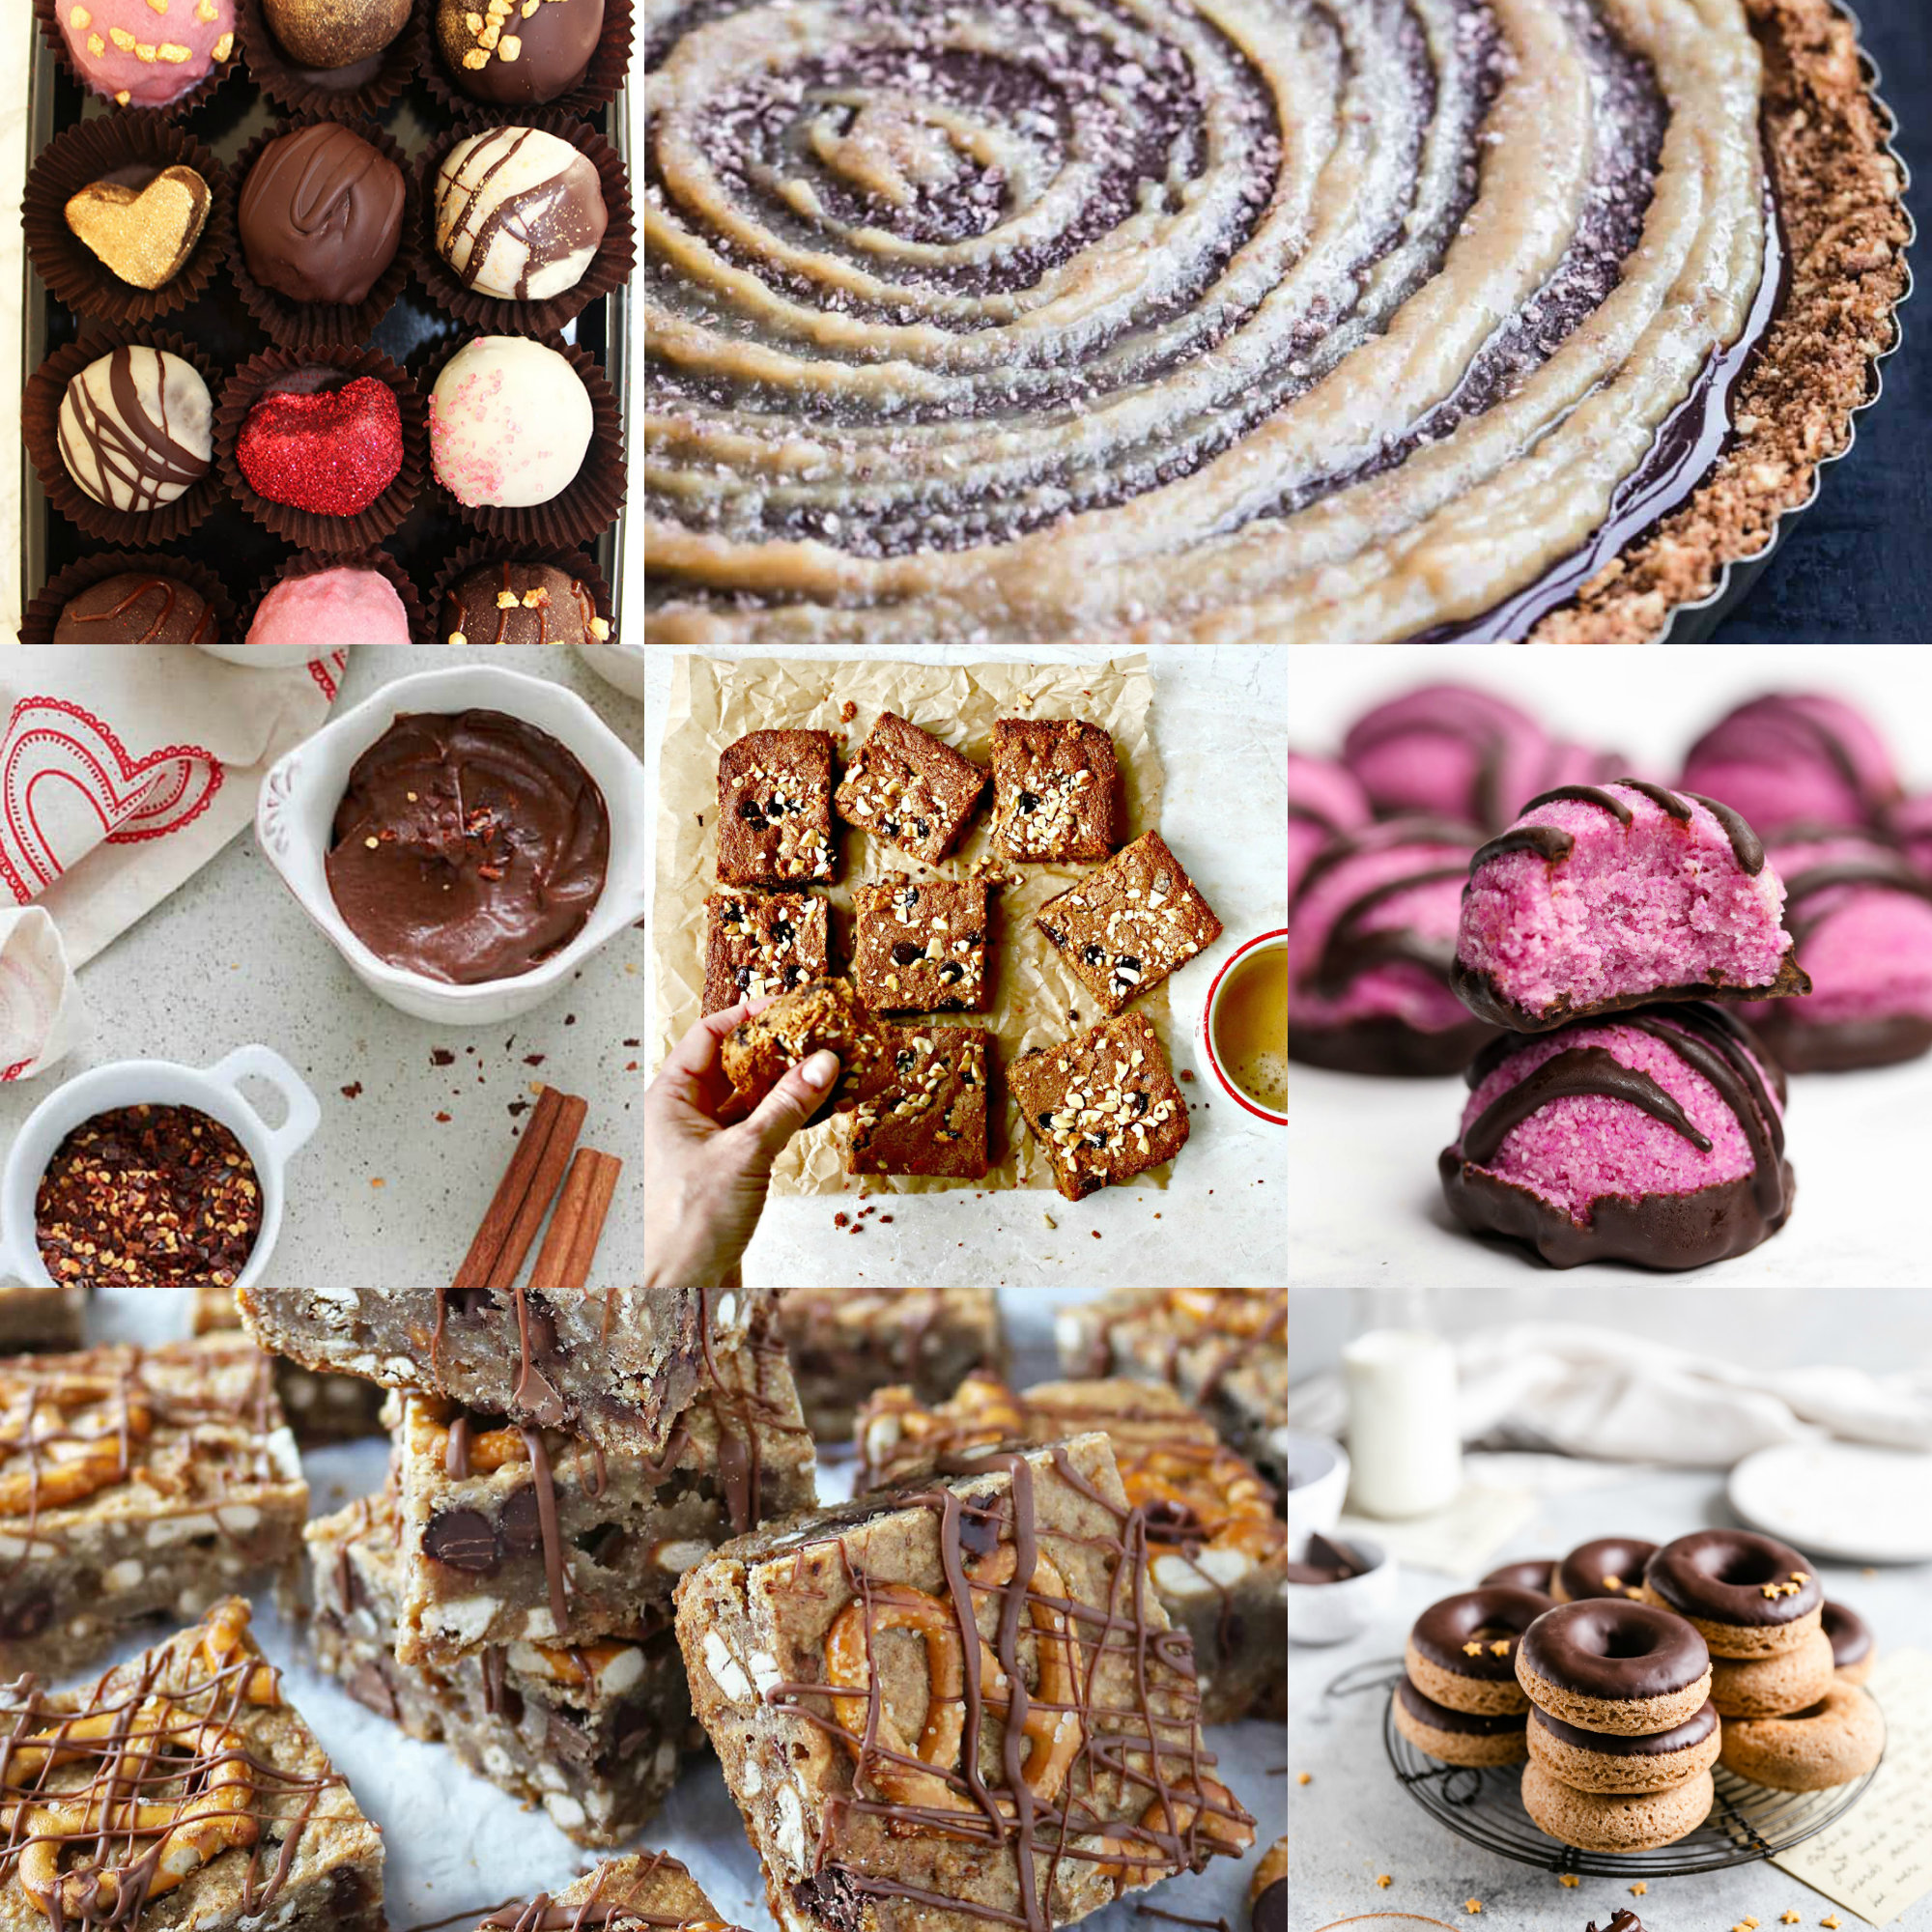 62 healthier chocolate recipes roundup collage